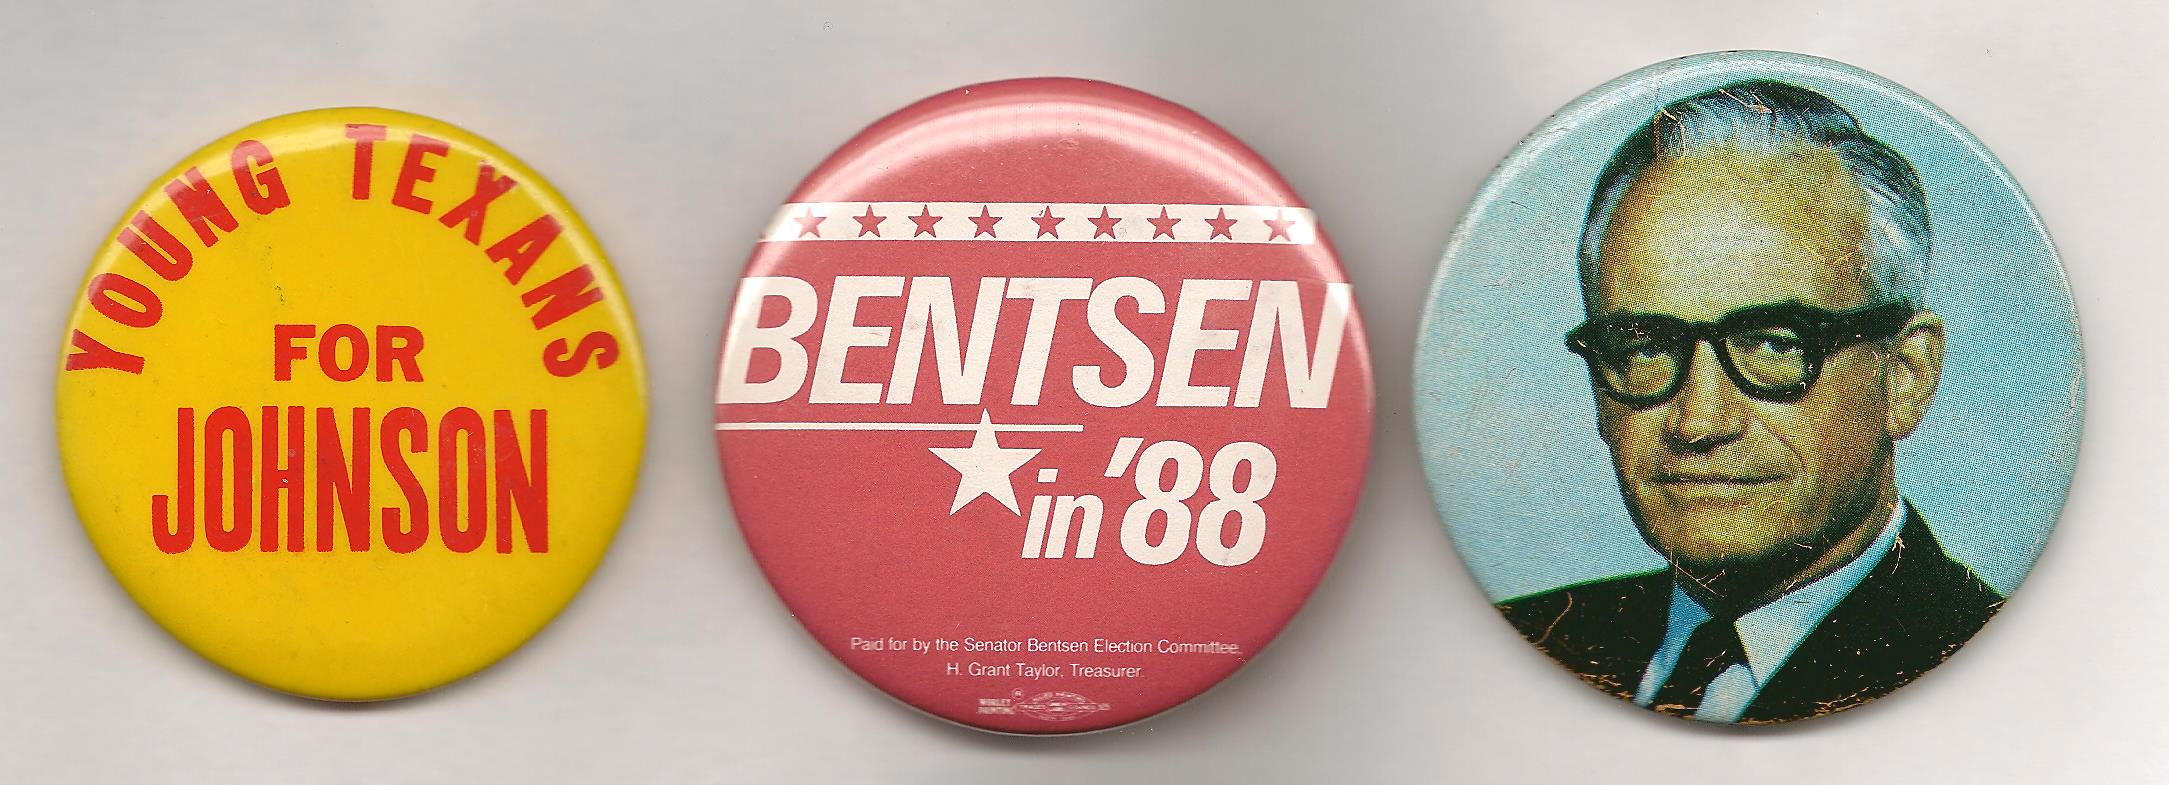 The Texas legislature allowed LBJ to run for Senate AND president (or VP); Lloyd Bentsen took advantage of that law in 1988; Barry Goldwater could have run for both in 1964 but decided to give up his Senate seat.